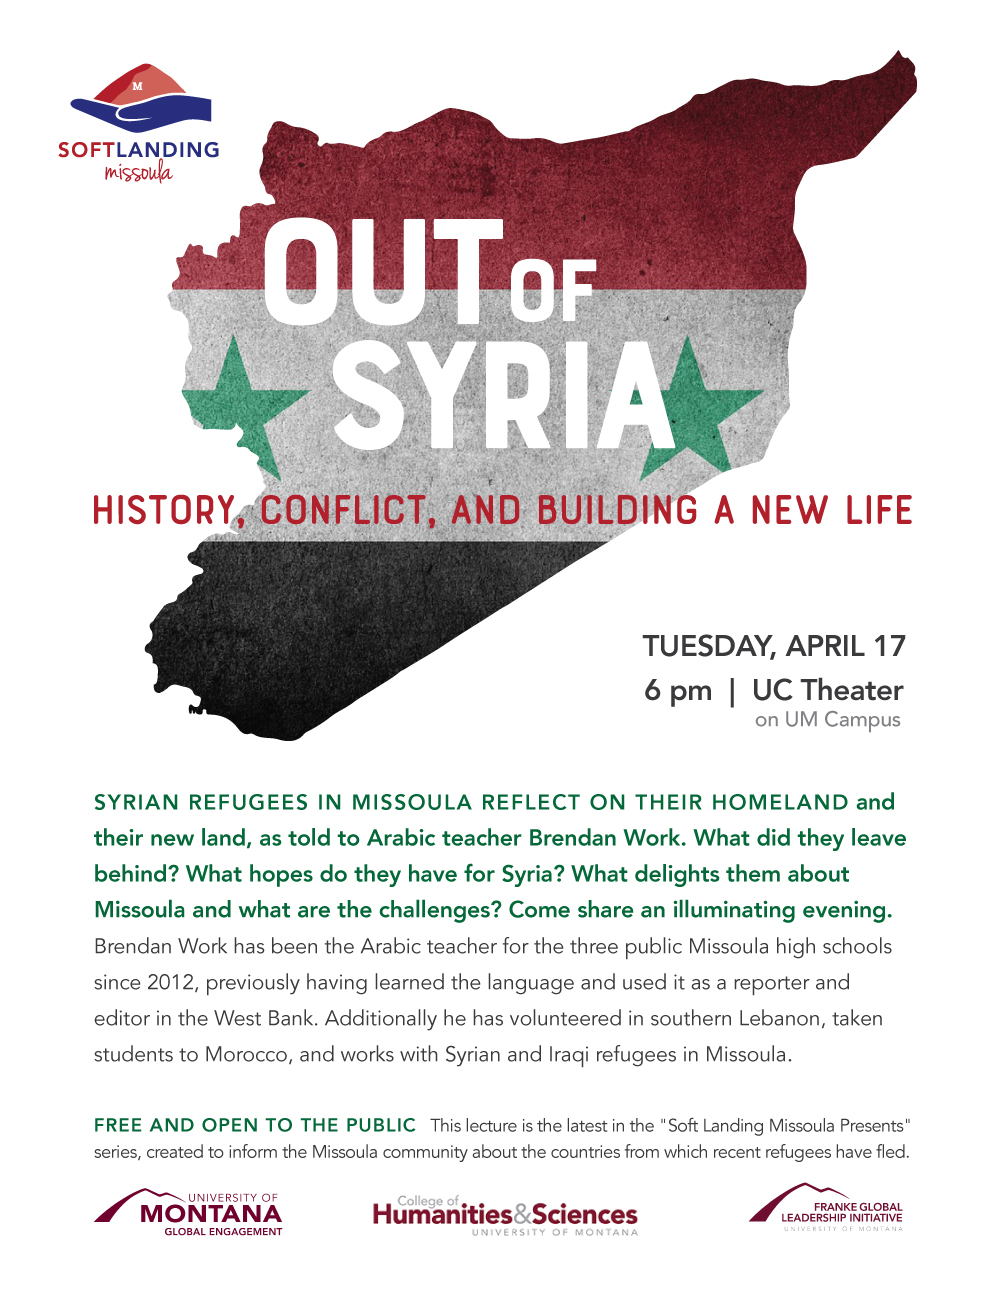 SLM-SyriaLecture-April2018-03.jpg